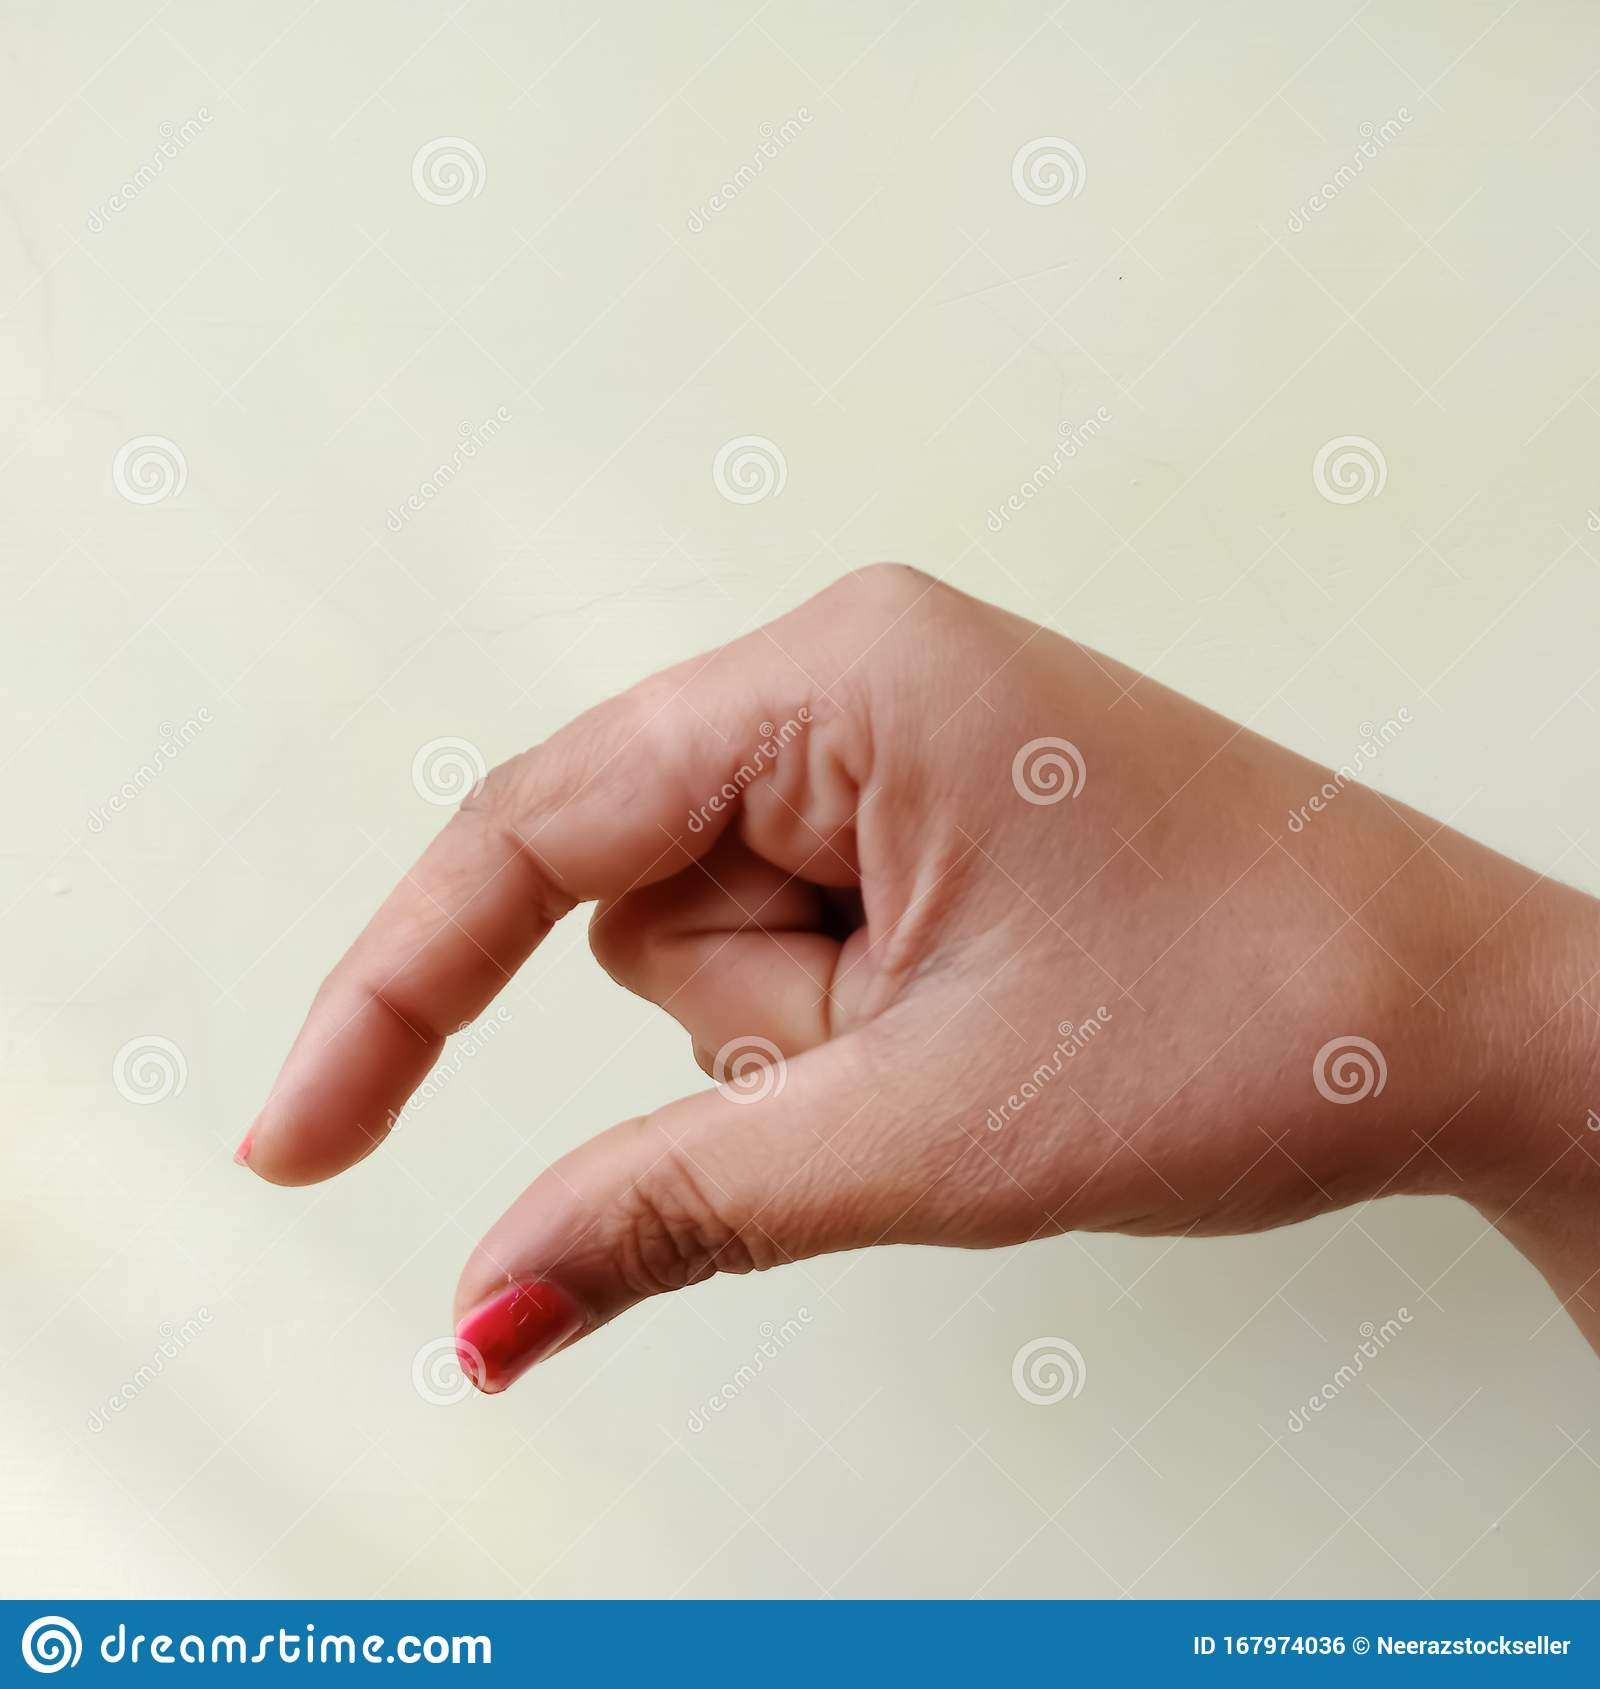 American Sign Language Alphabet Letter P Displayed With